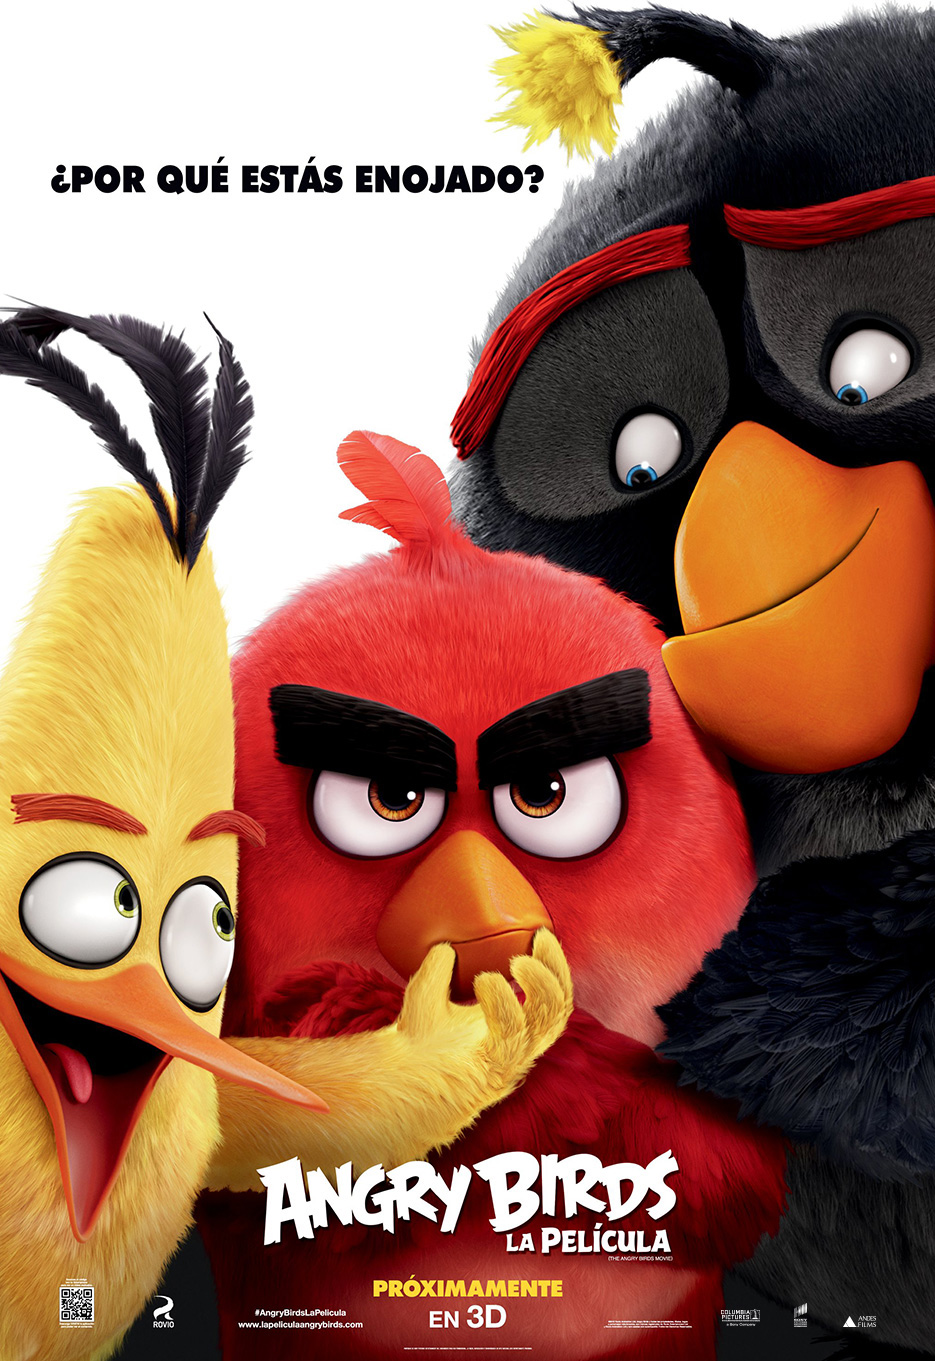 http://www.andesfilms.com.pe/angry-birds/